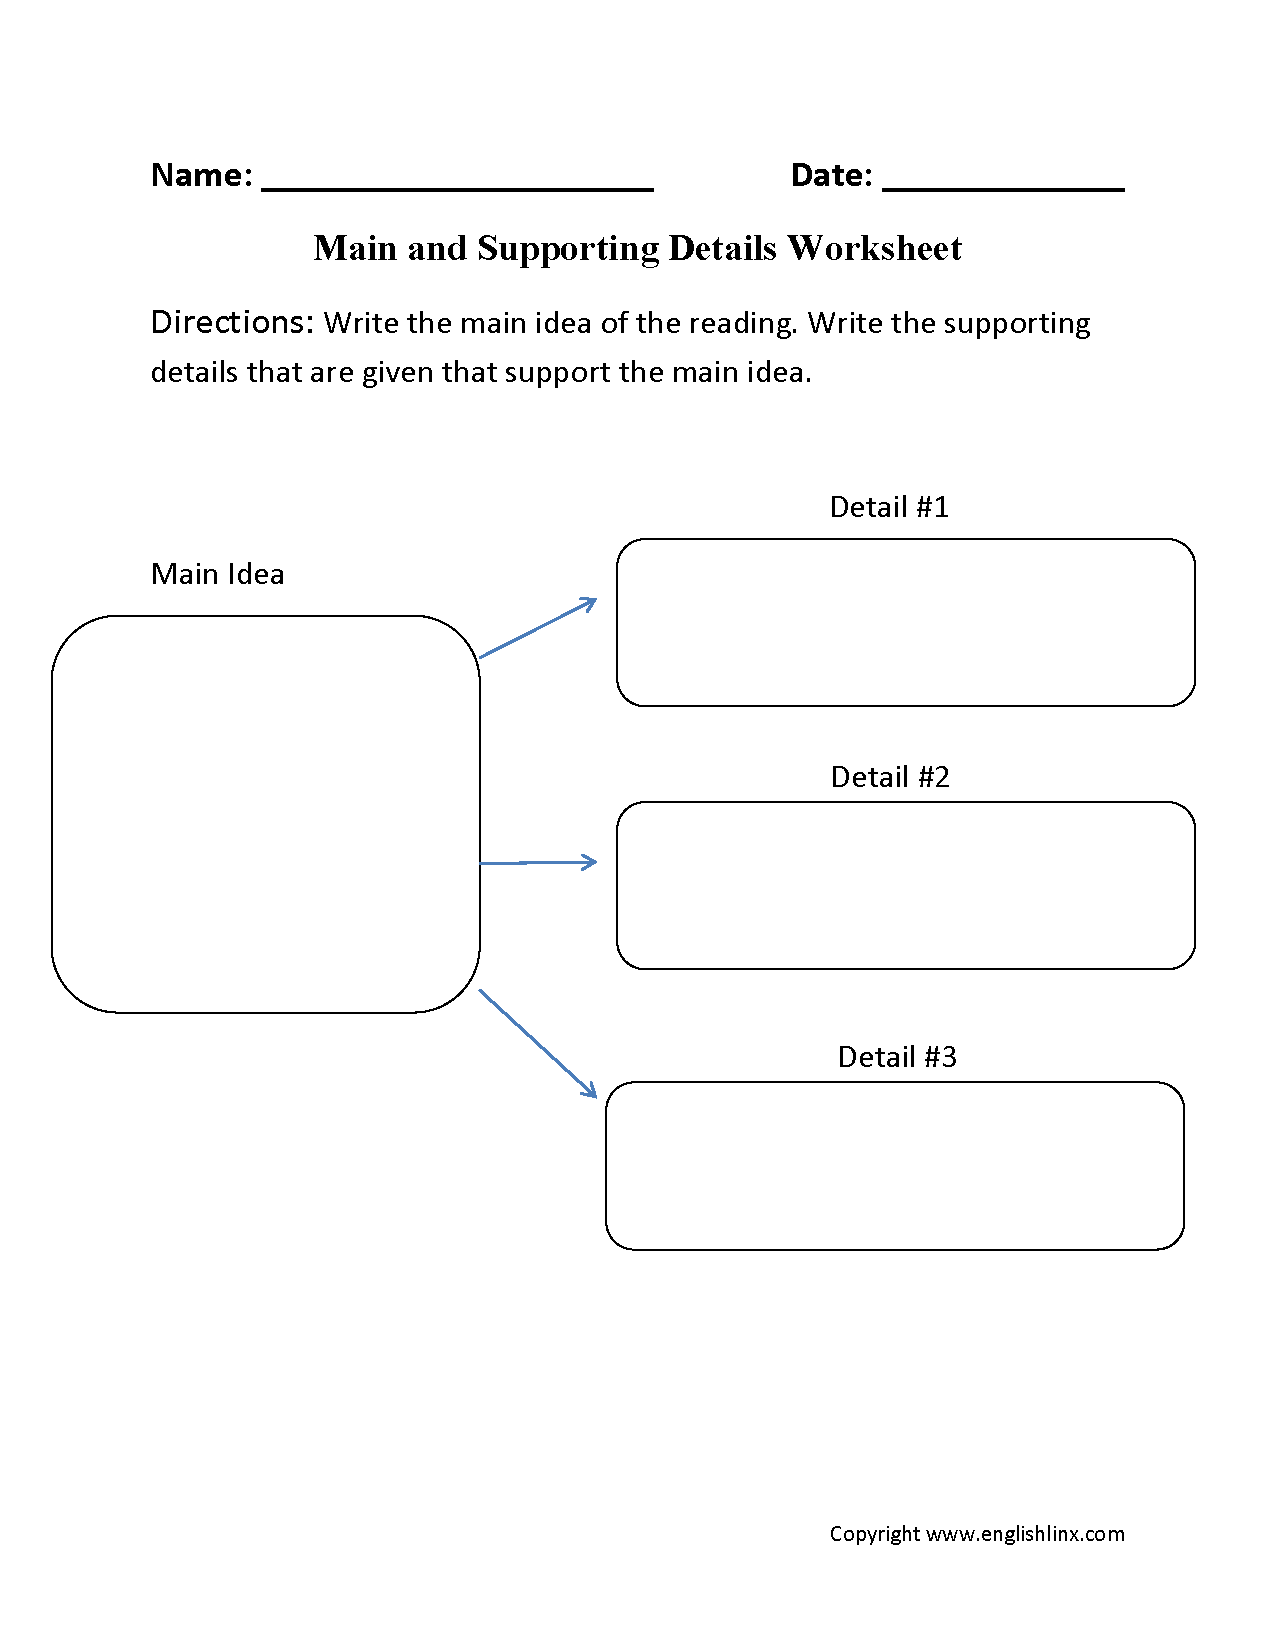 Worksheets 6th Grade Main Idea Worksheets main idea worksheets and supporting details worksheet worksheet